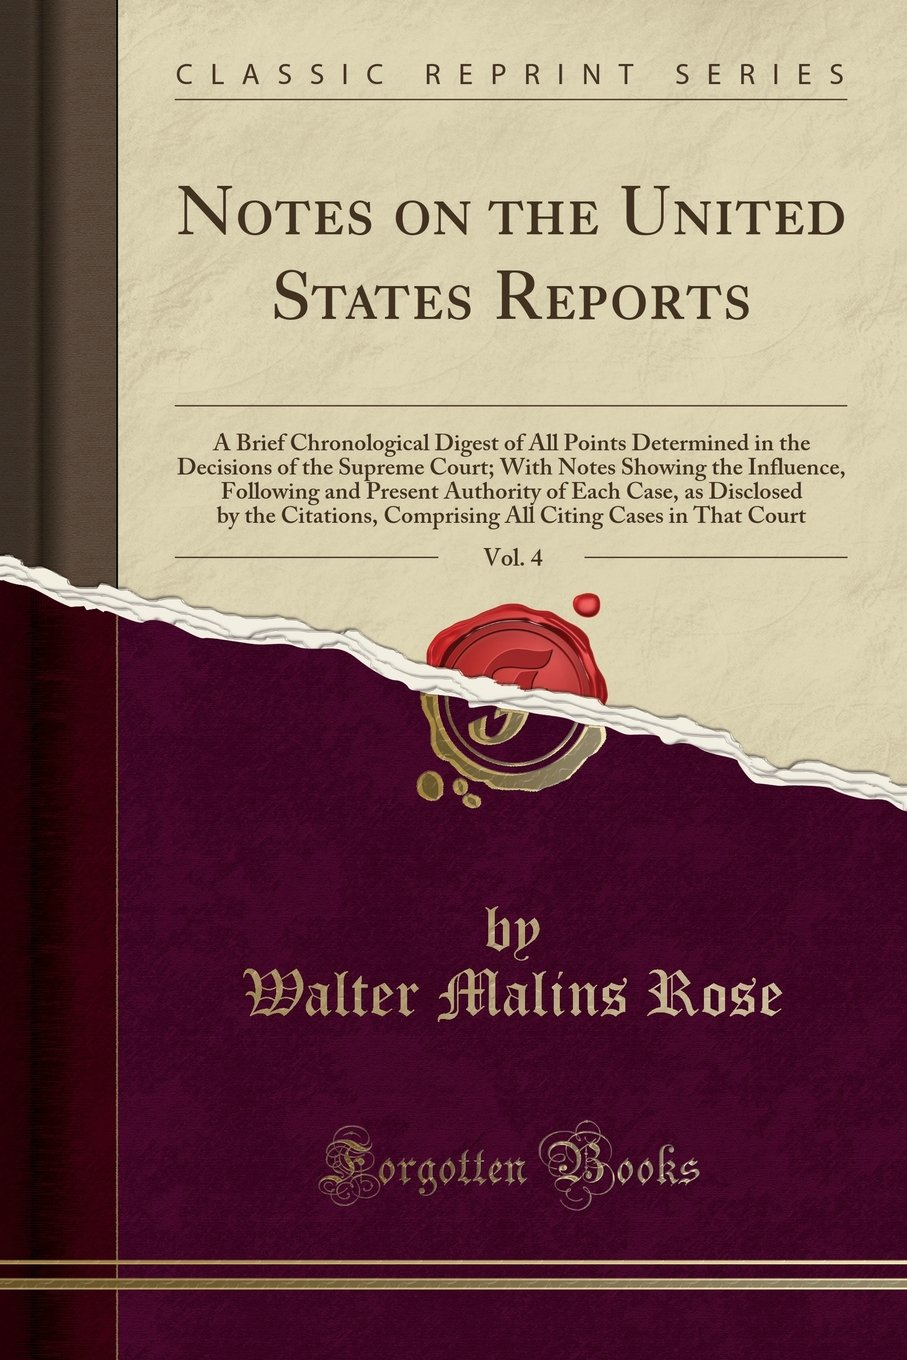 Read Online Notes on the United States Reports, Vol. 4: A Brief Chronological Digest of All Points Determined in the Decisions of the Supreme Court; With Notes ... Case, as Disclosed by the Citations, Compris ebook